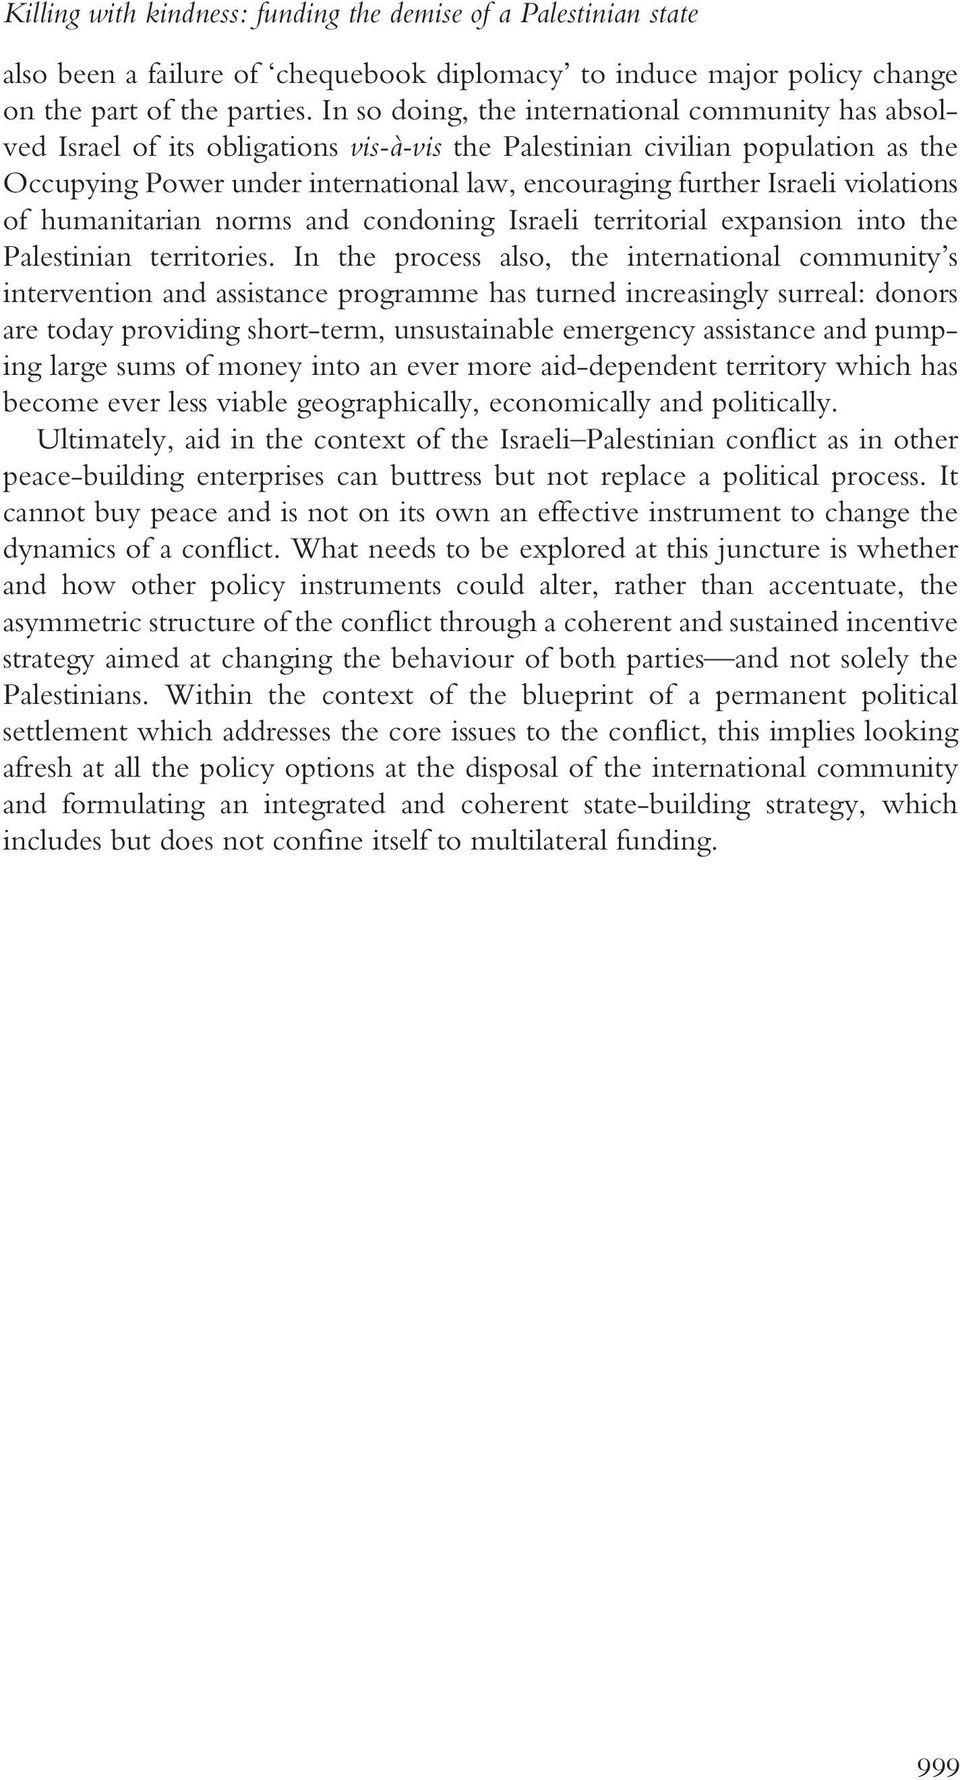 Israeli violations of humanitarian norms and condoning Israeli territorial expansion into the Palestinian territories.